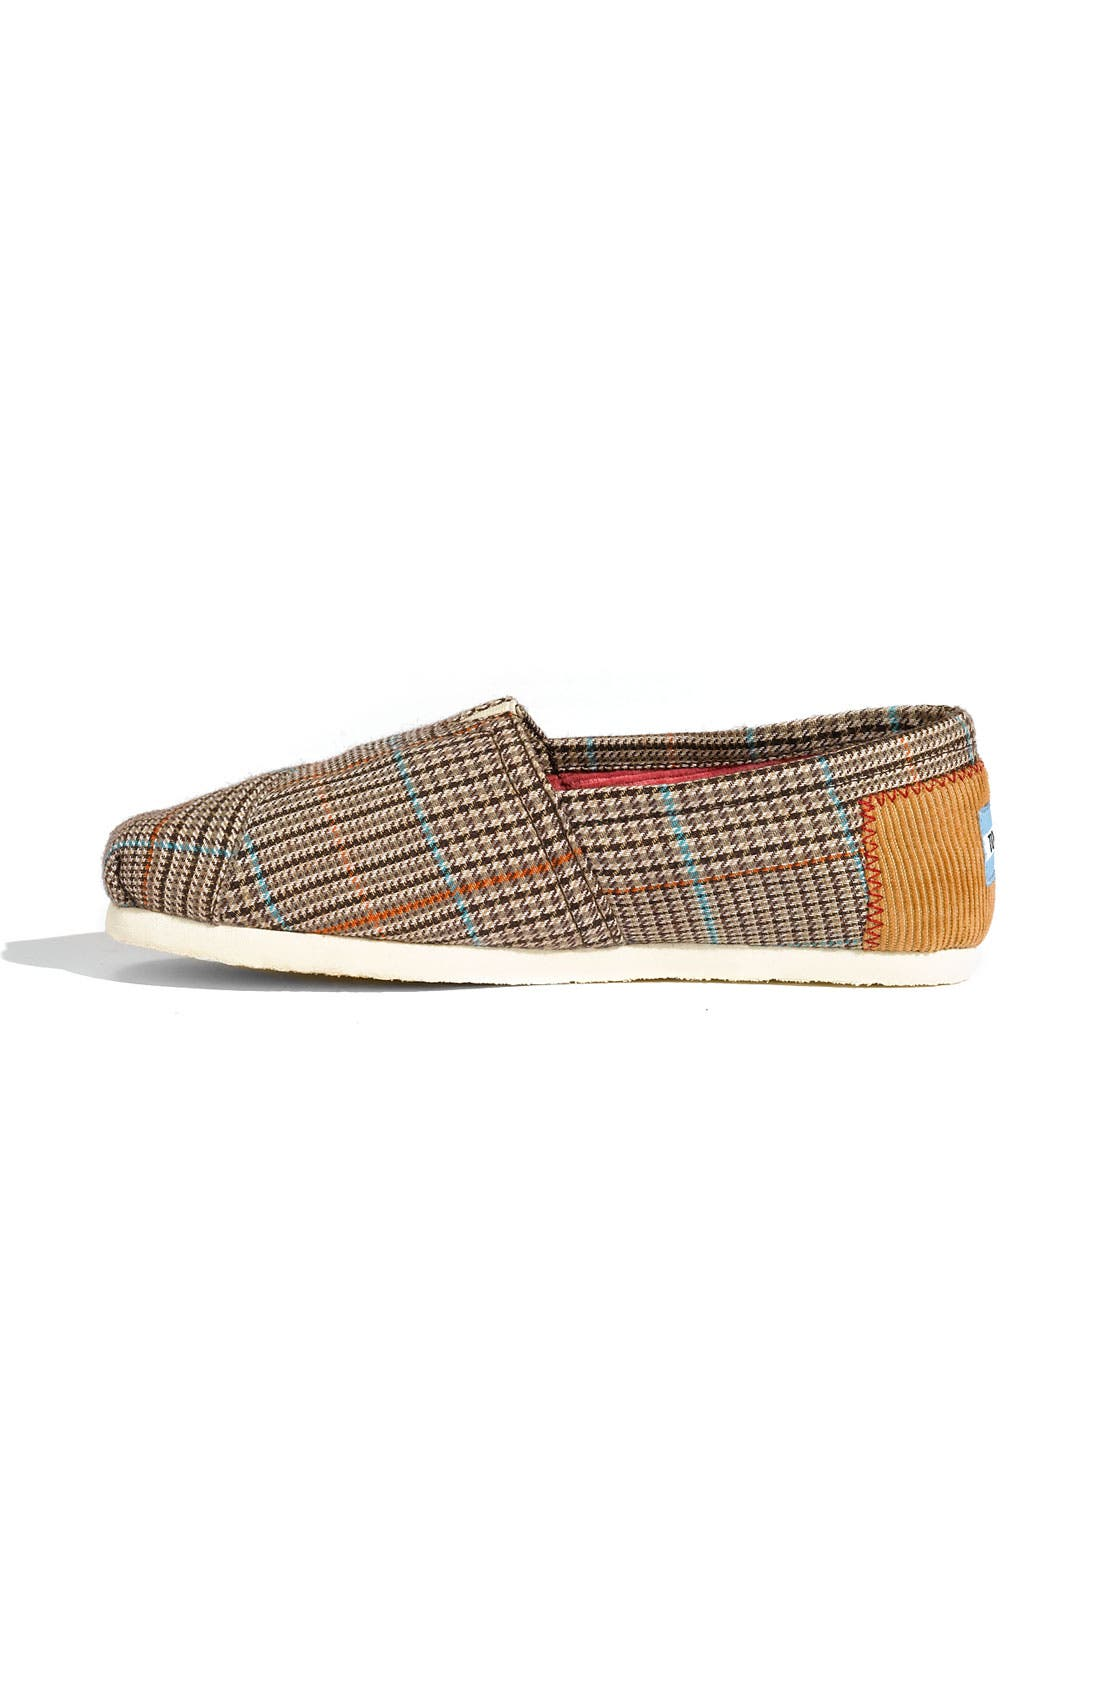 'Classic - Academy Plaid' Slip-On,                             Alternate thumbnail 3, color,                             200